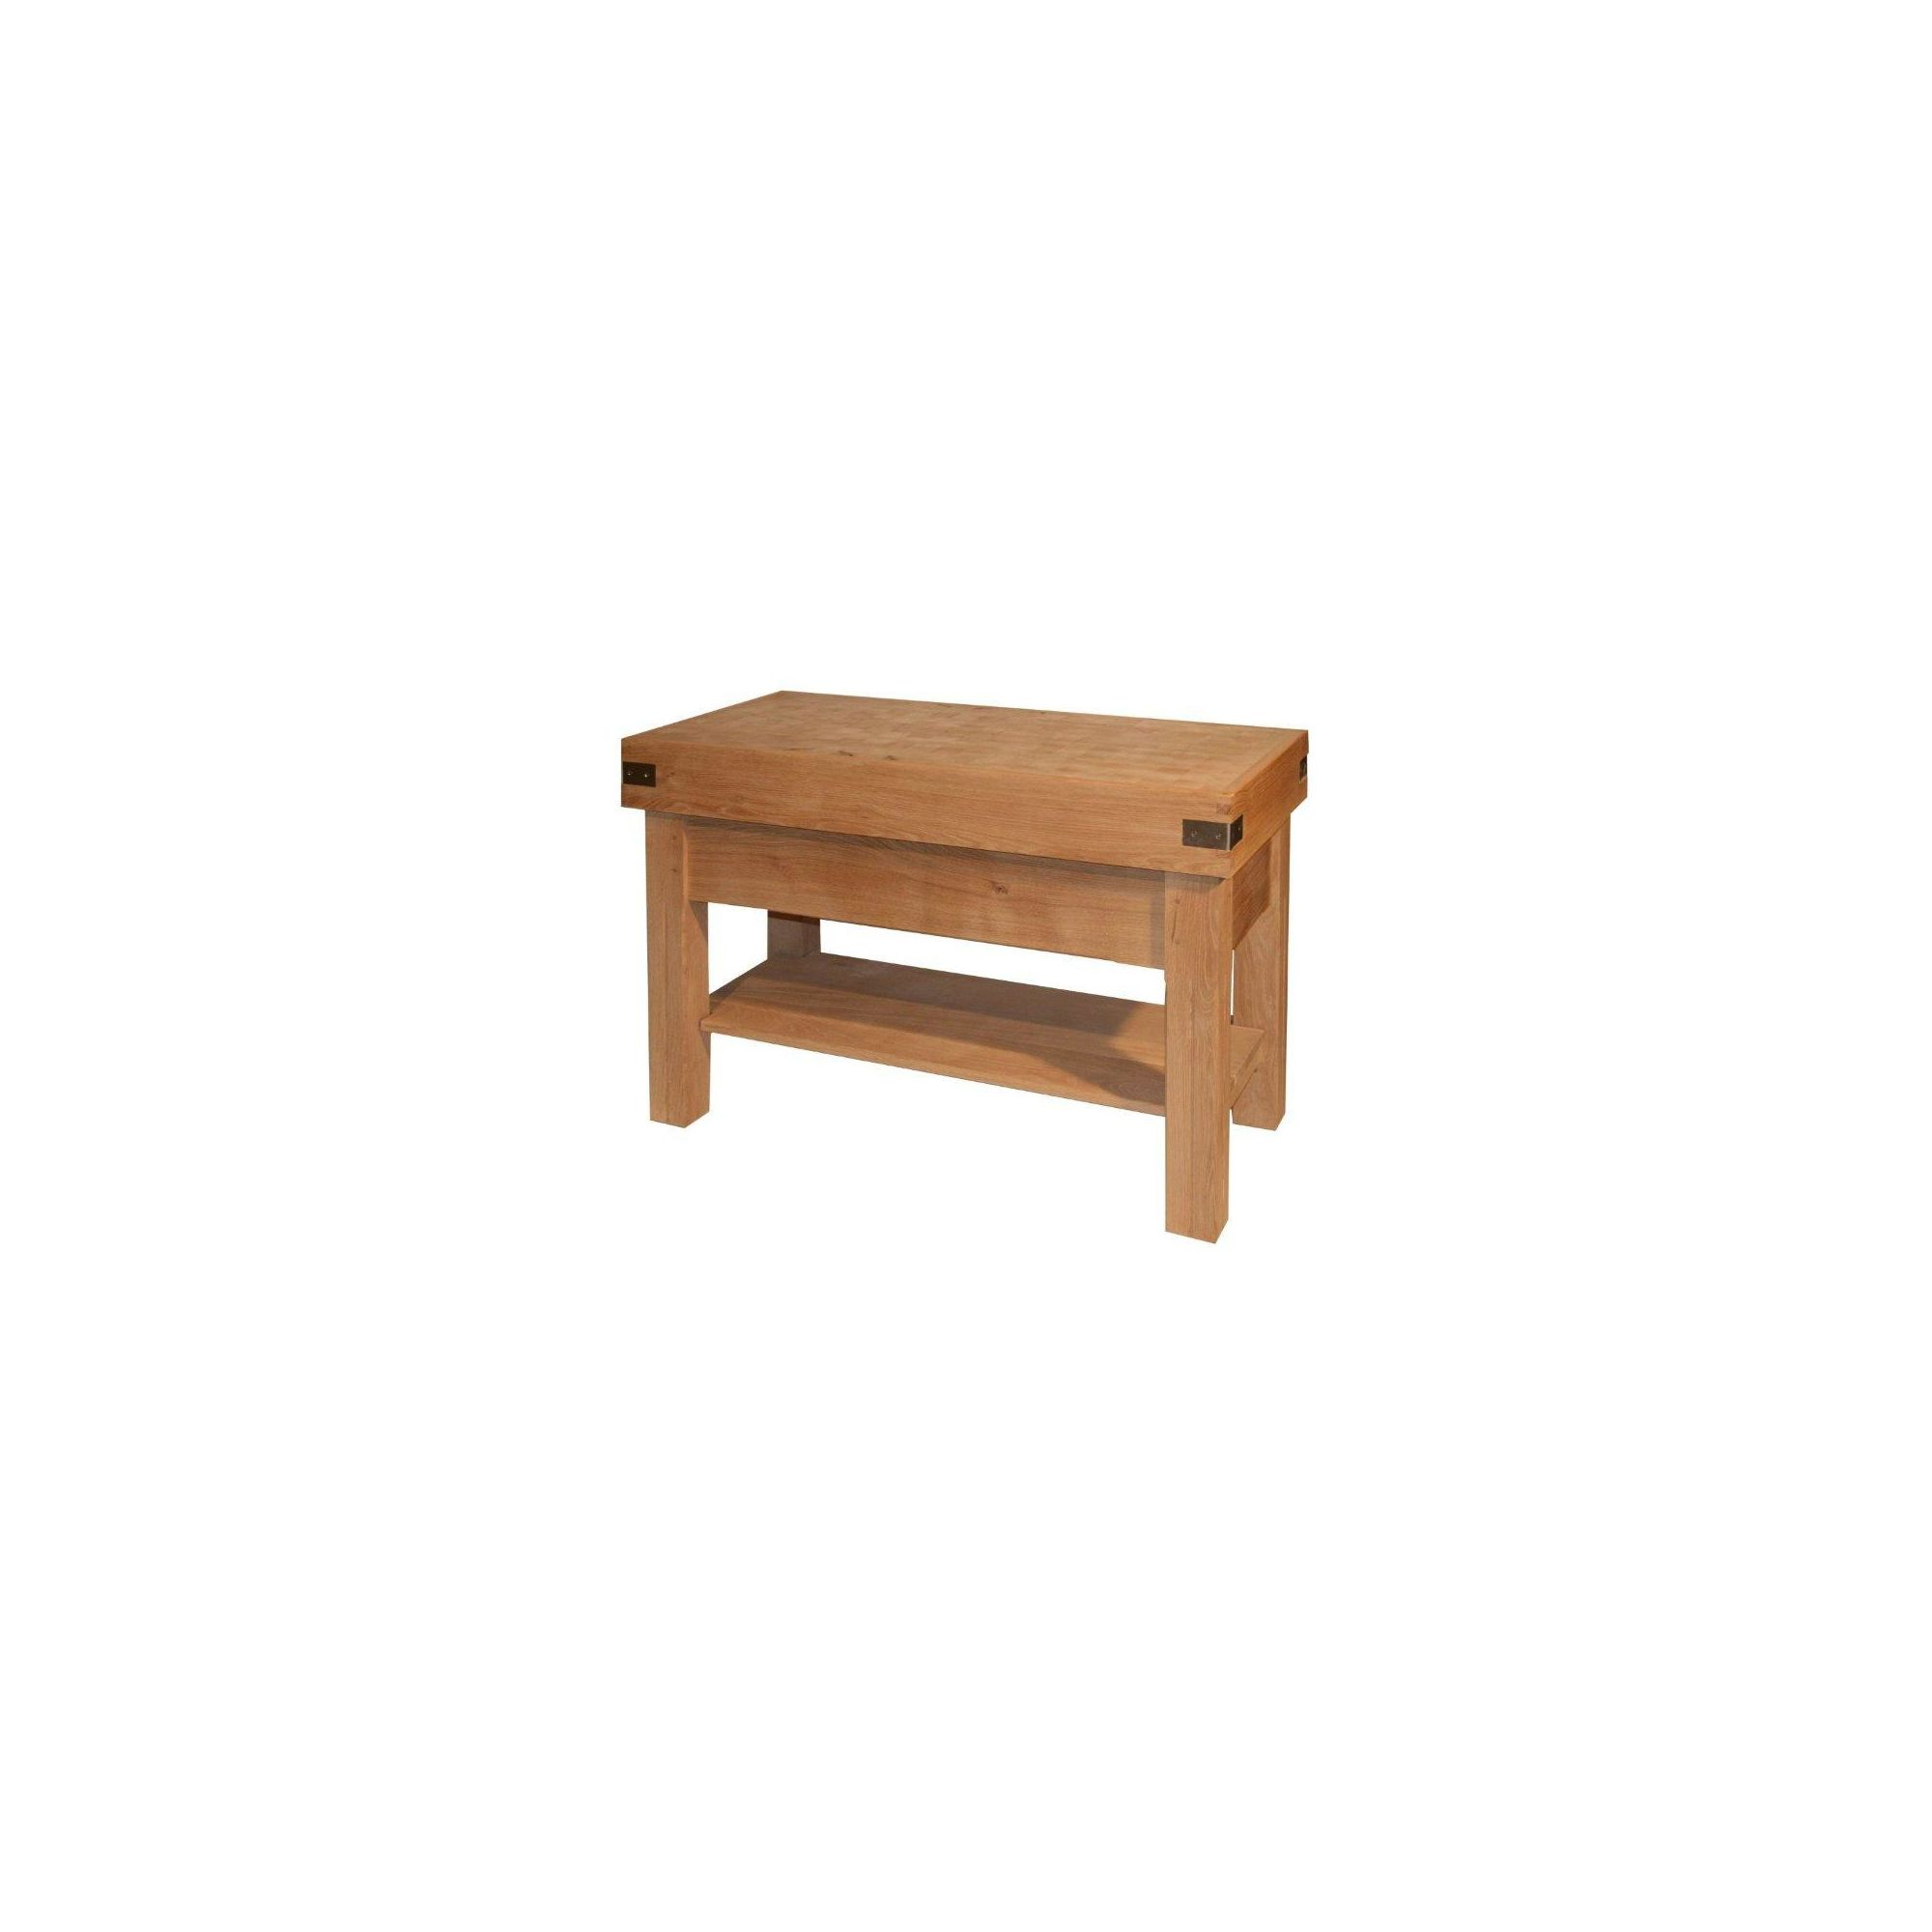 Chabret Traditional Kitchen Island Block - 85cm X 120cm X 60cm at Tesco Direct